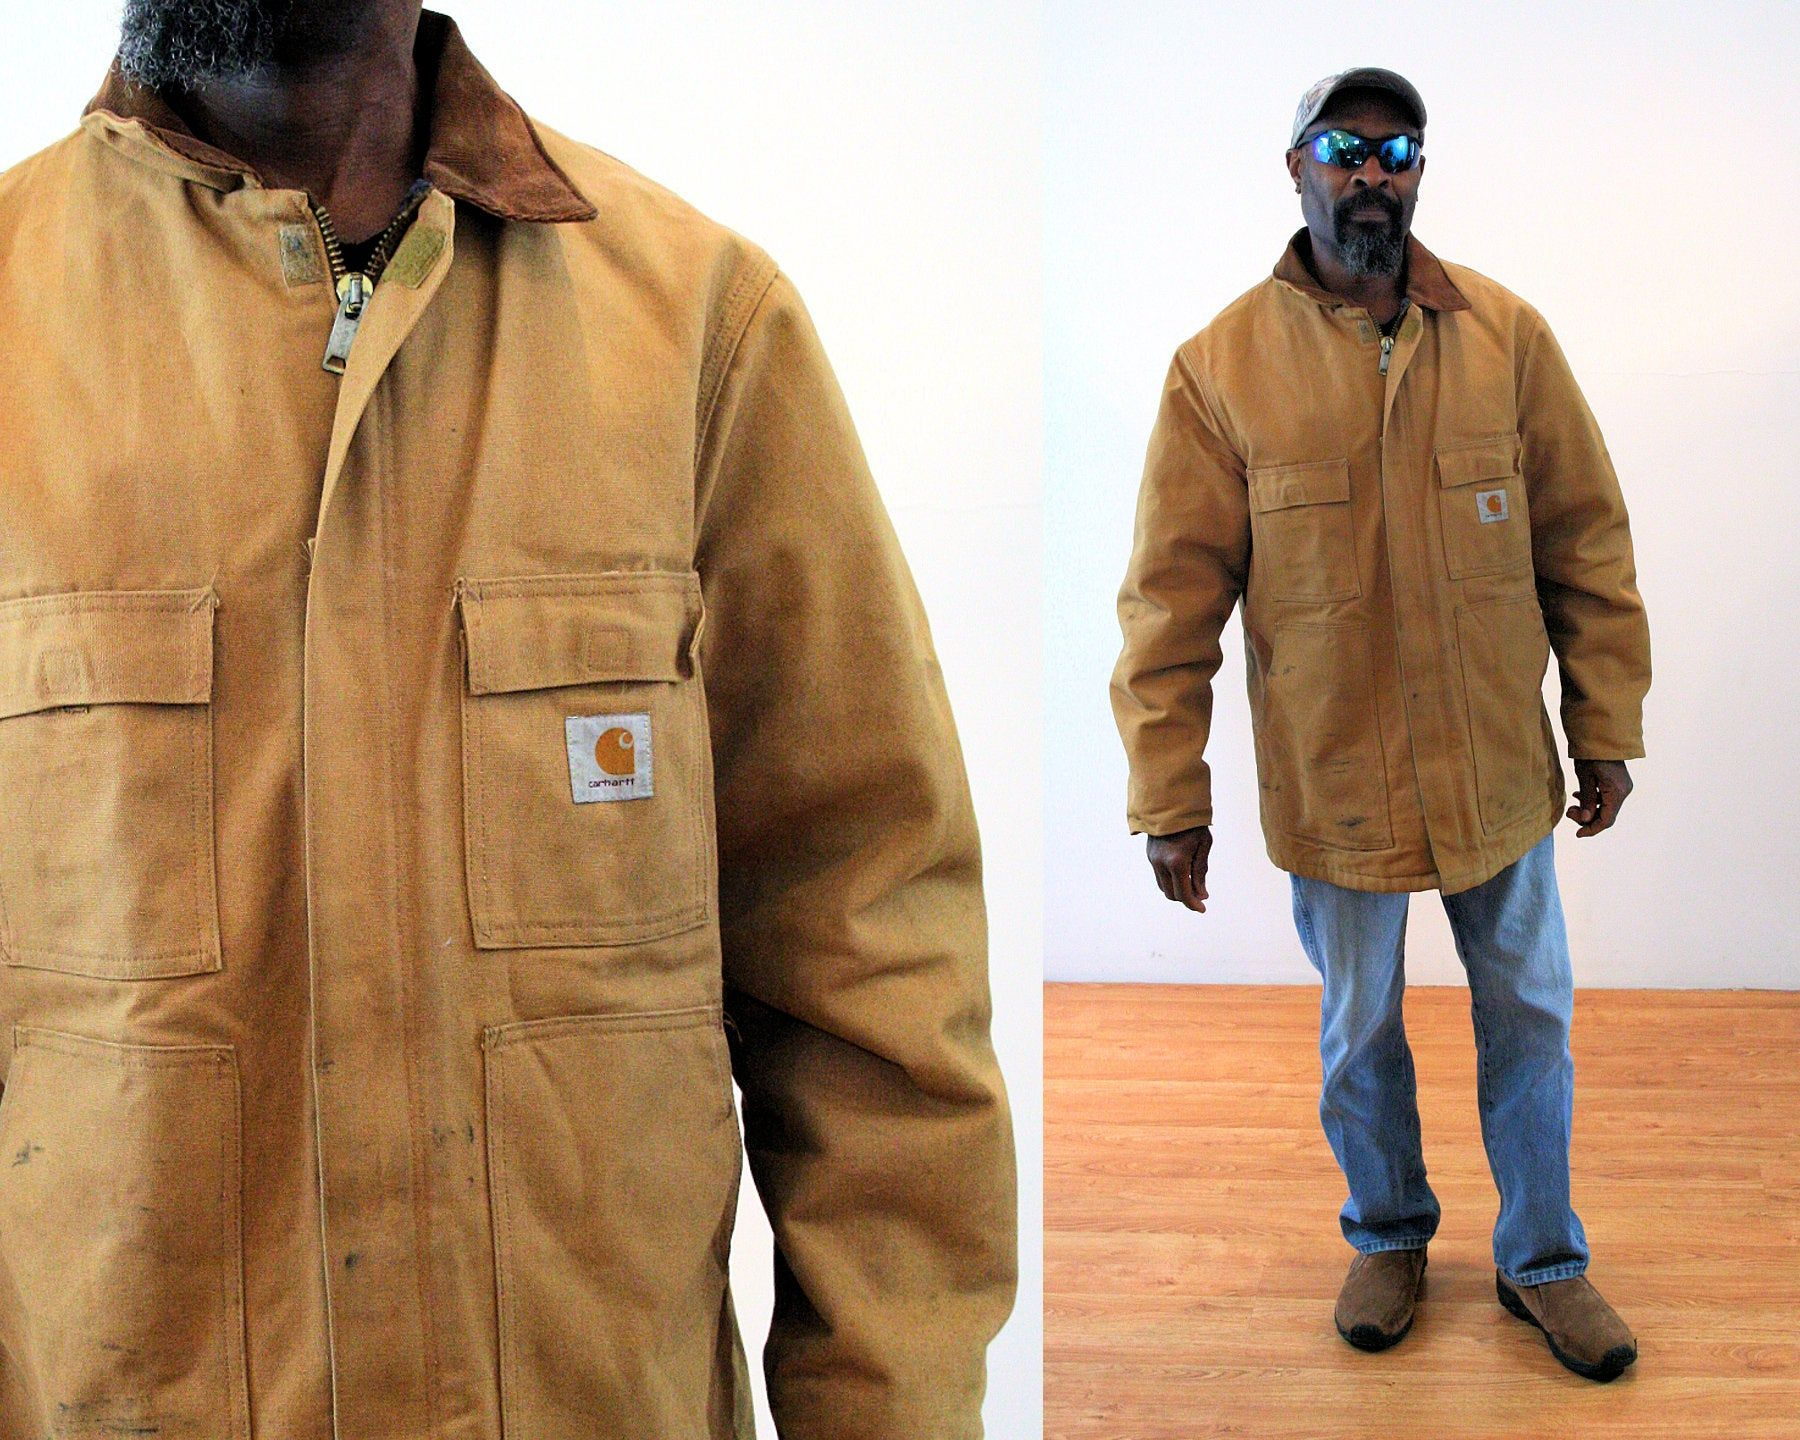 80s Carhartt Chore Coat 44 L Xl Heavy Duty Rugged Blanket Lined Distressed Vintage Jacket Large Vintage Jacket Carhartt Chore Coat Vintage Flannel Shirt [ 1440 x 1800 Pixel ]